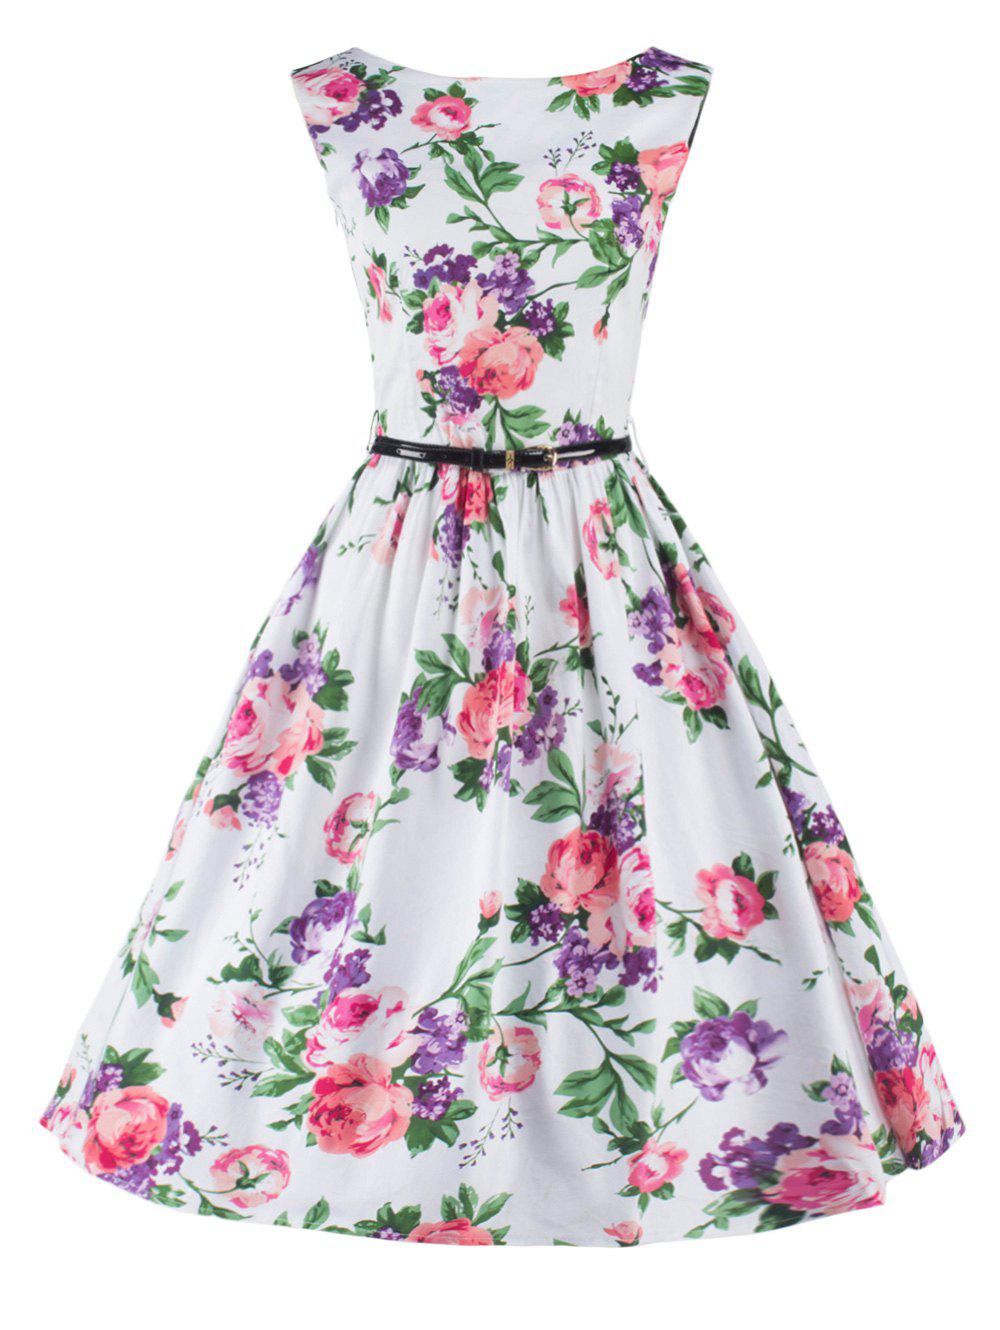 Sleeveless Floral Flare Cocktail Dress svs pc12 plus